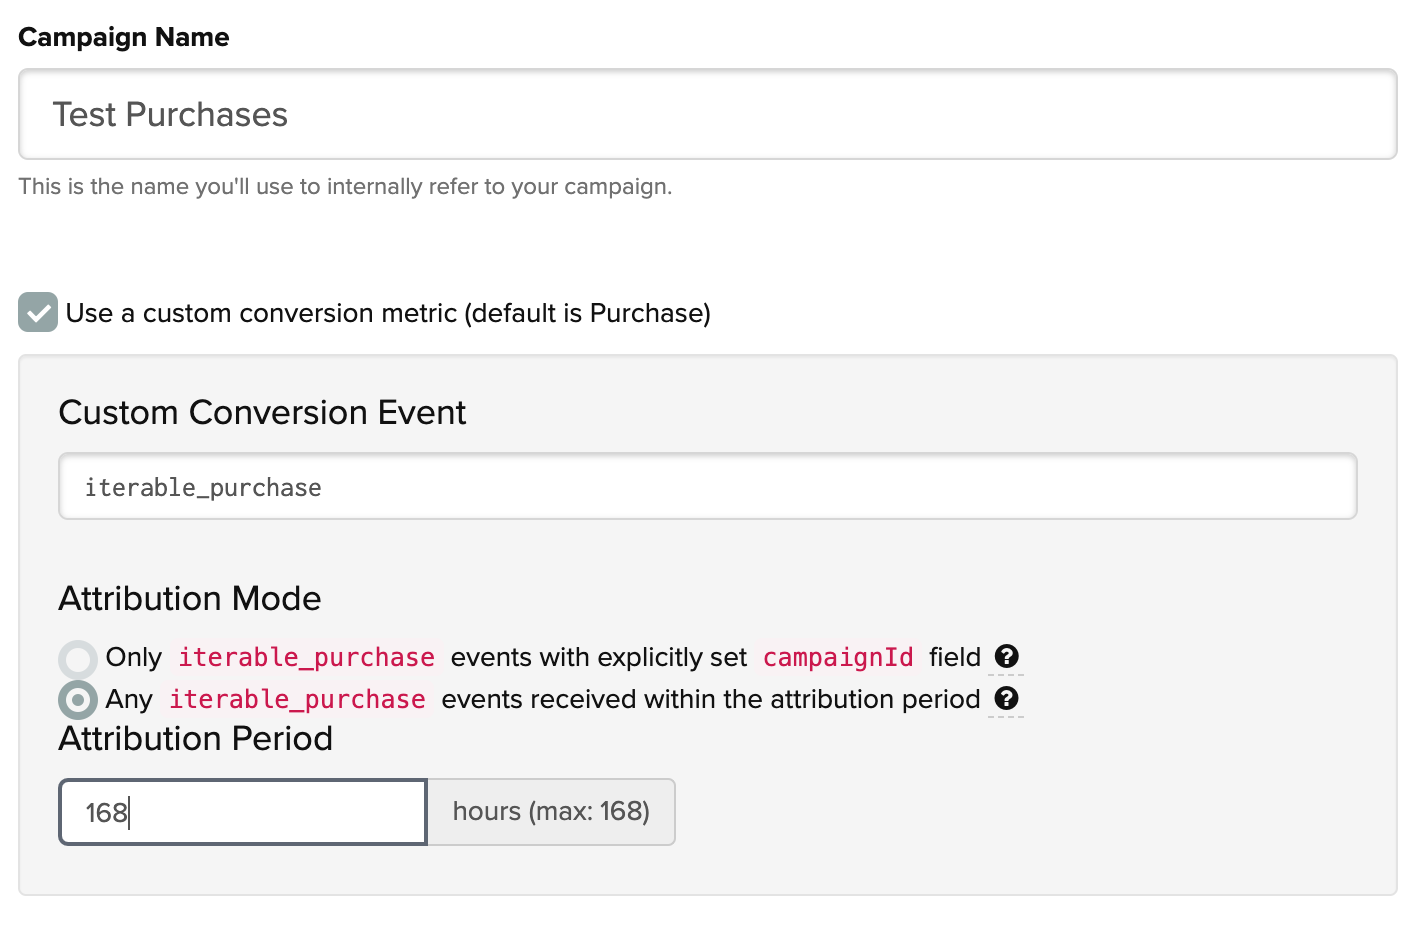 Specifying a custom conversion event in Iterable